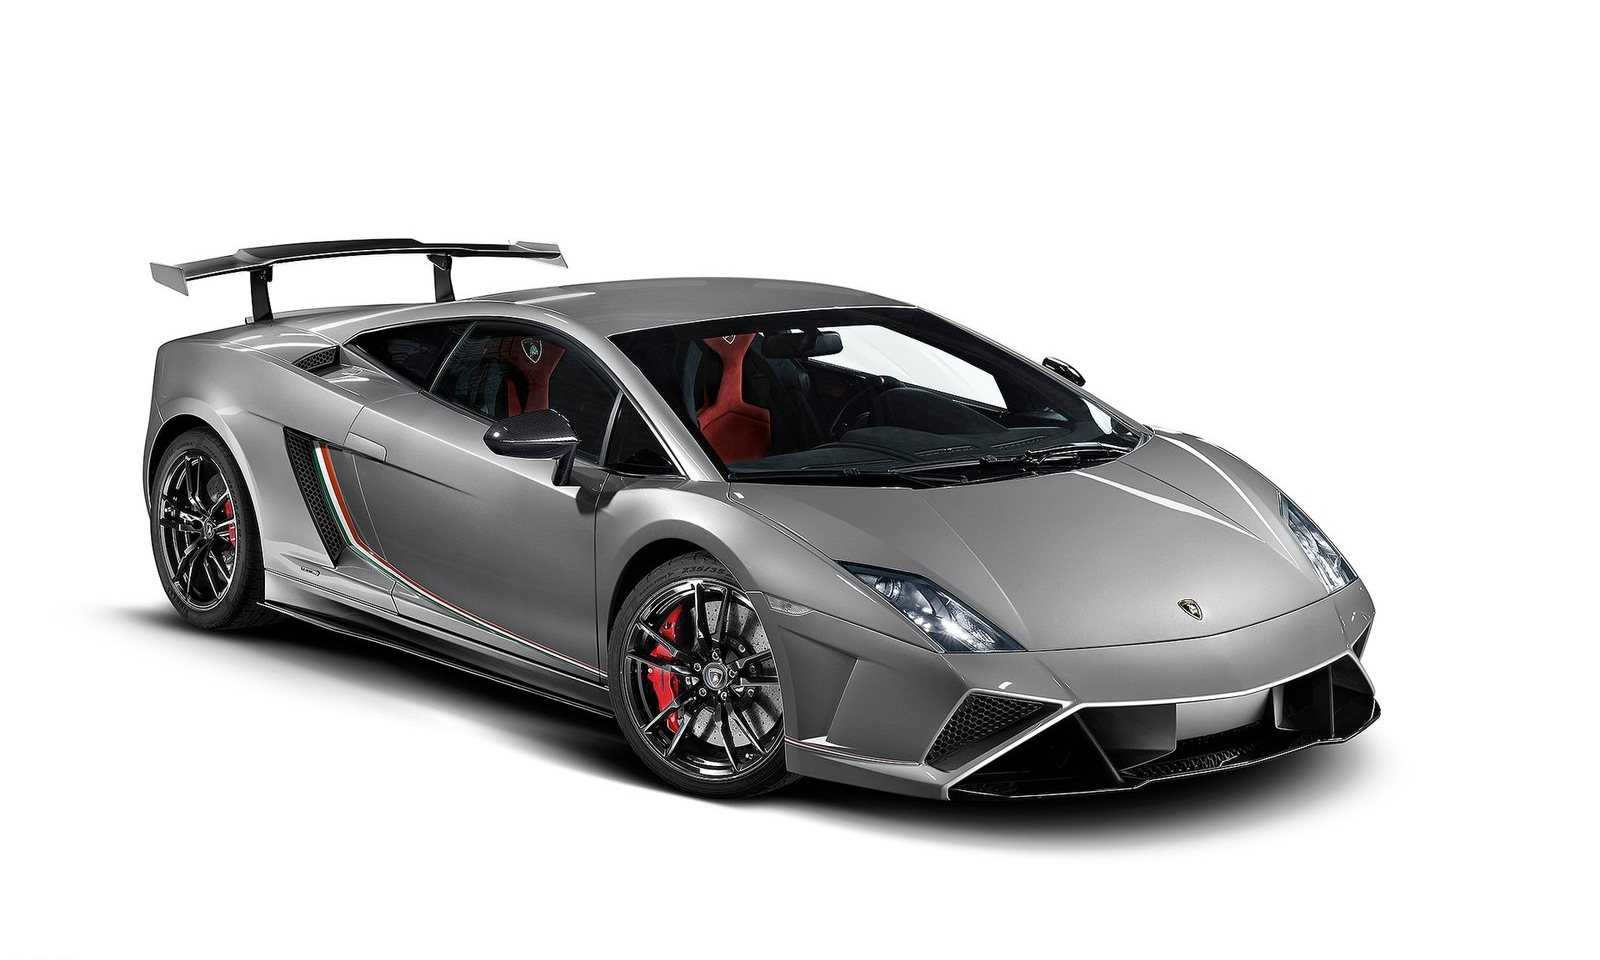 Lamborghini Gallardo 5.2 2013 photo - 3